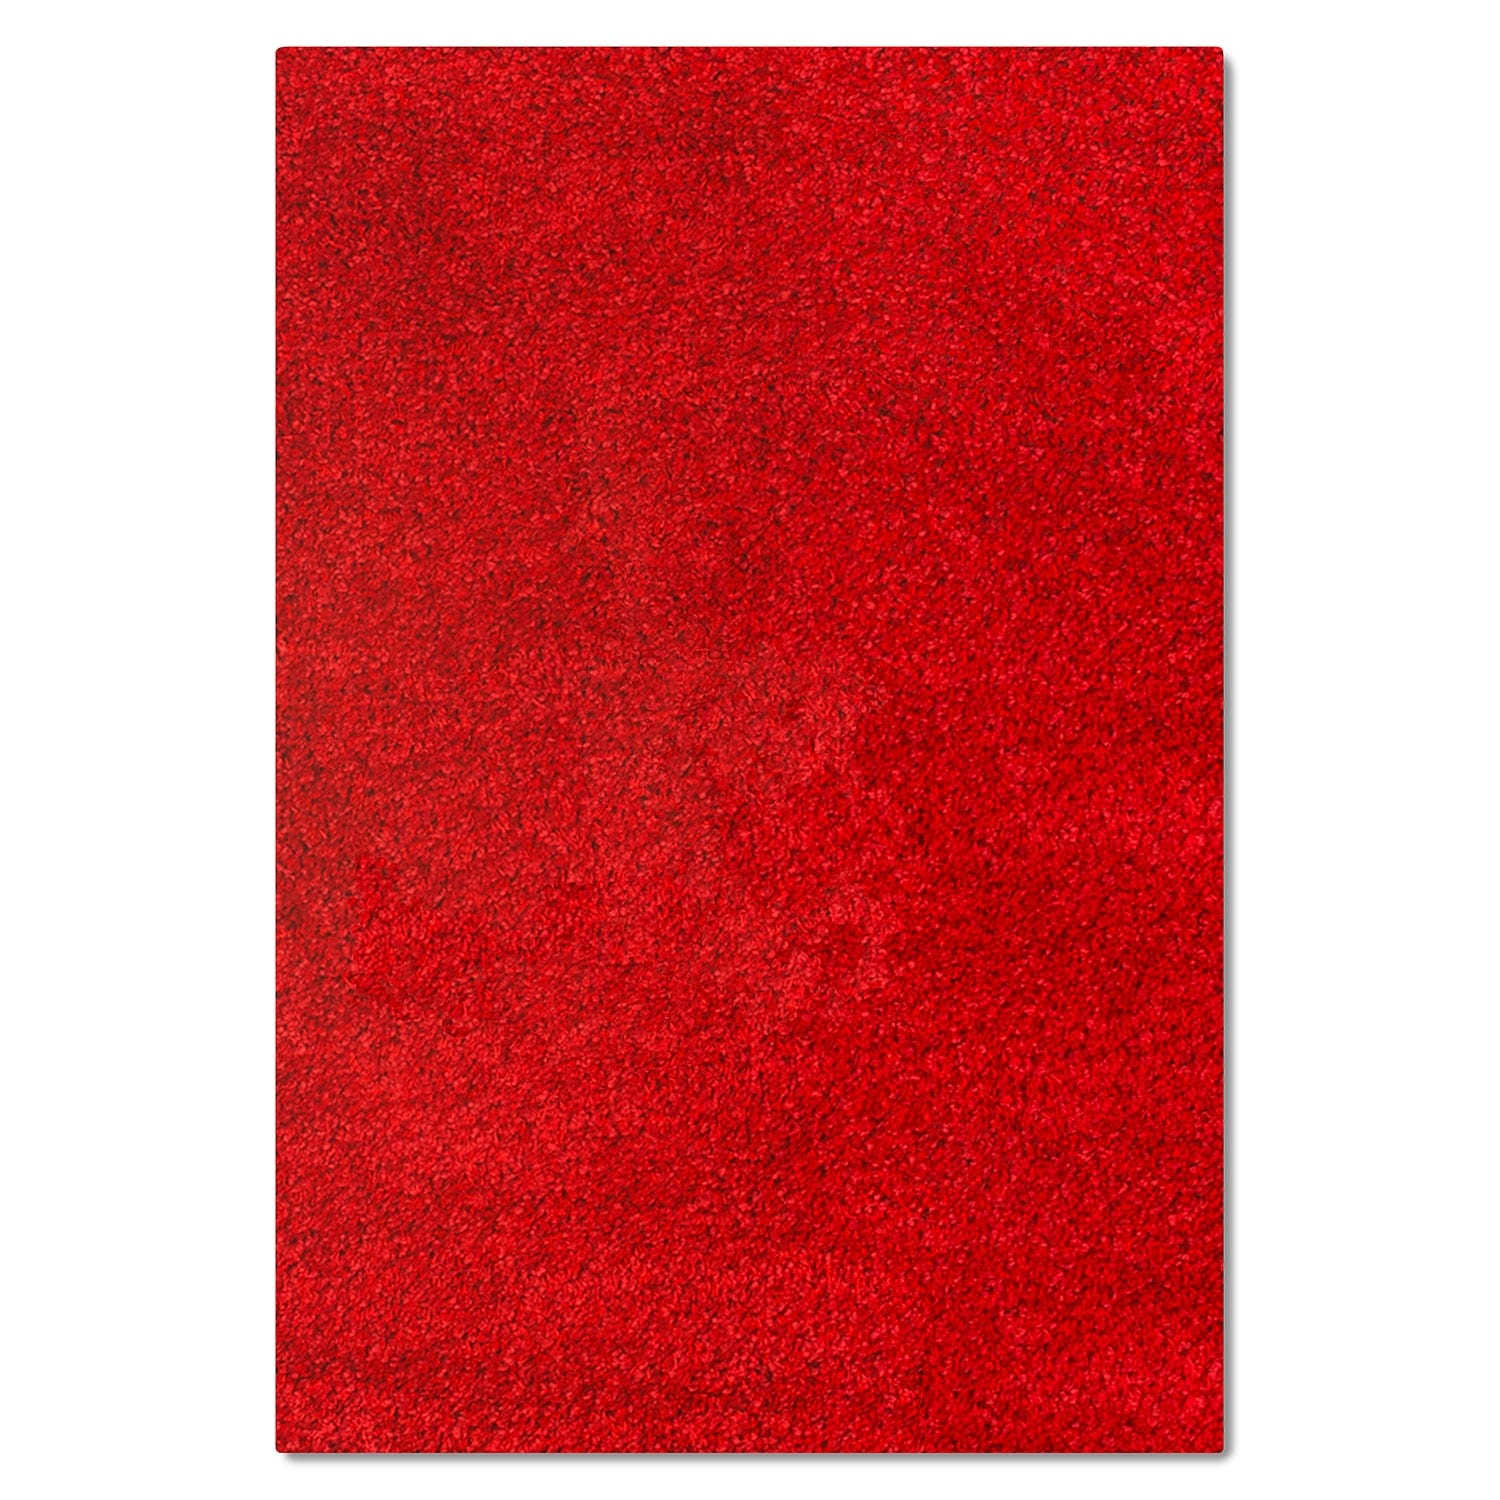 Rugs - Comfort Red Shag Area Rug (8' x 10')